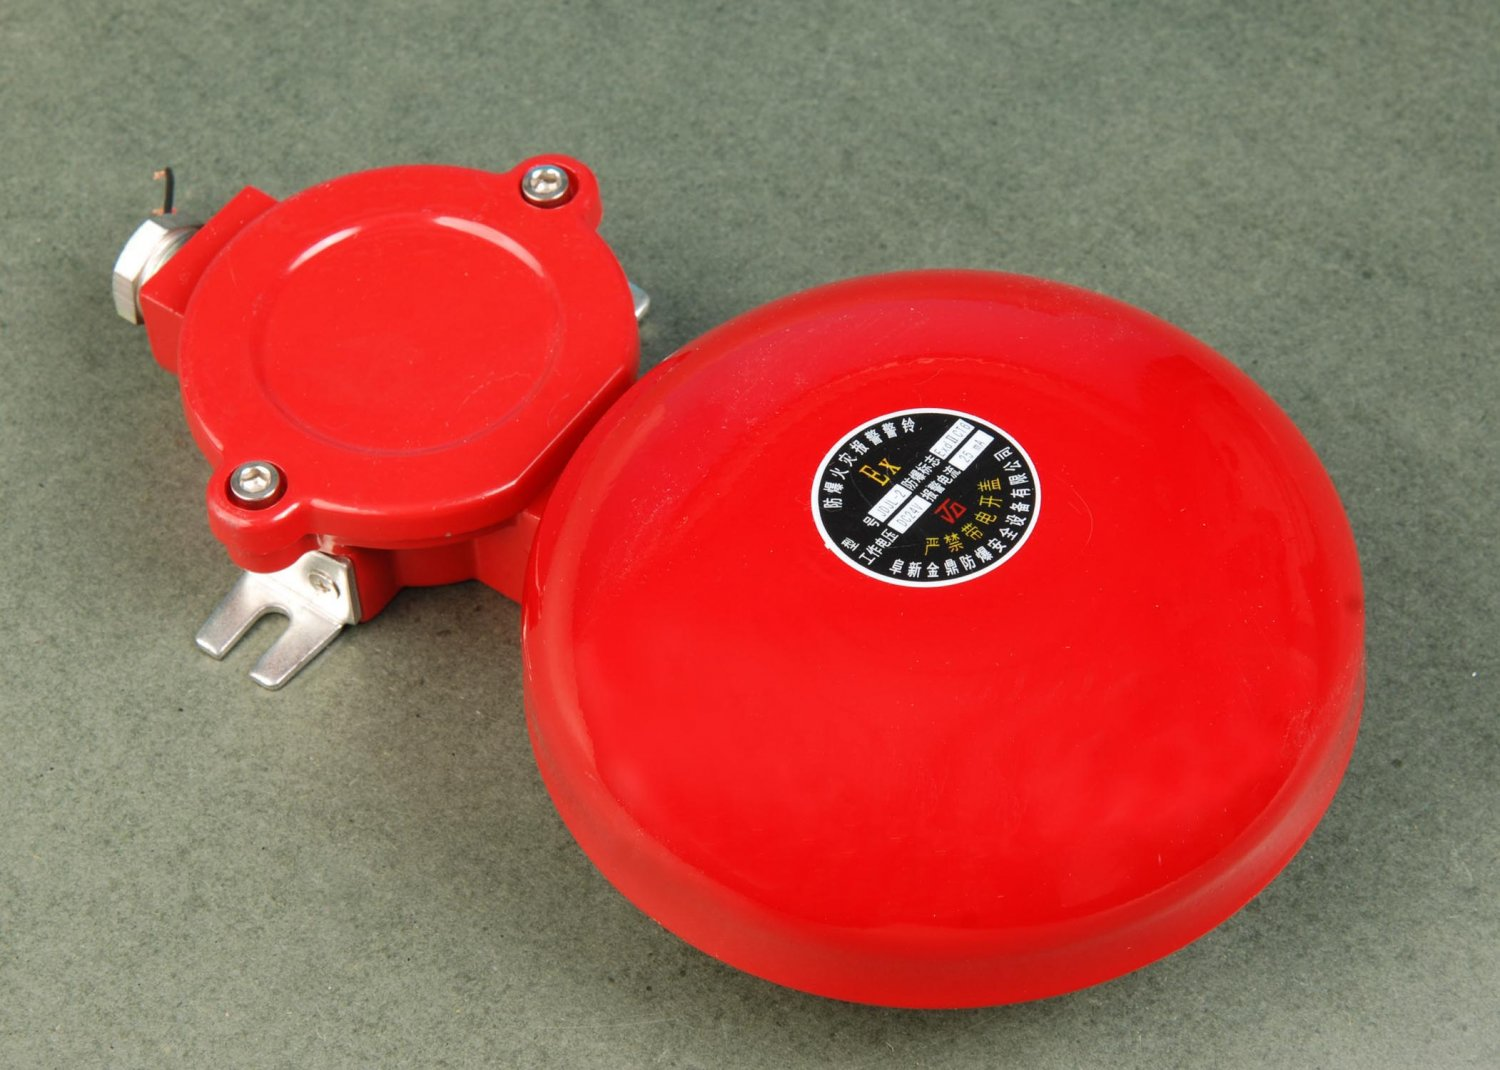 Alarm Bell Ex type industry security Fire fighting